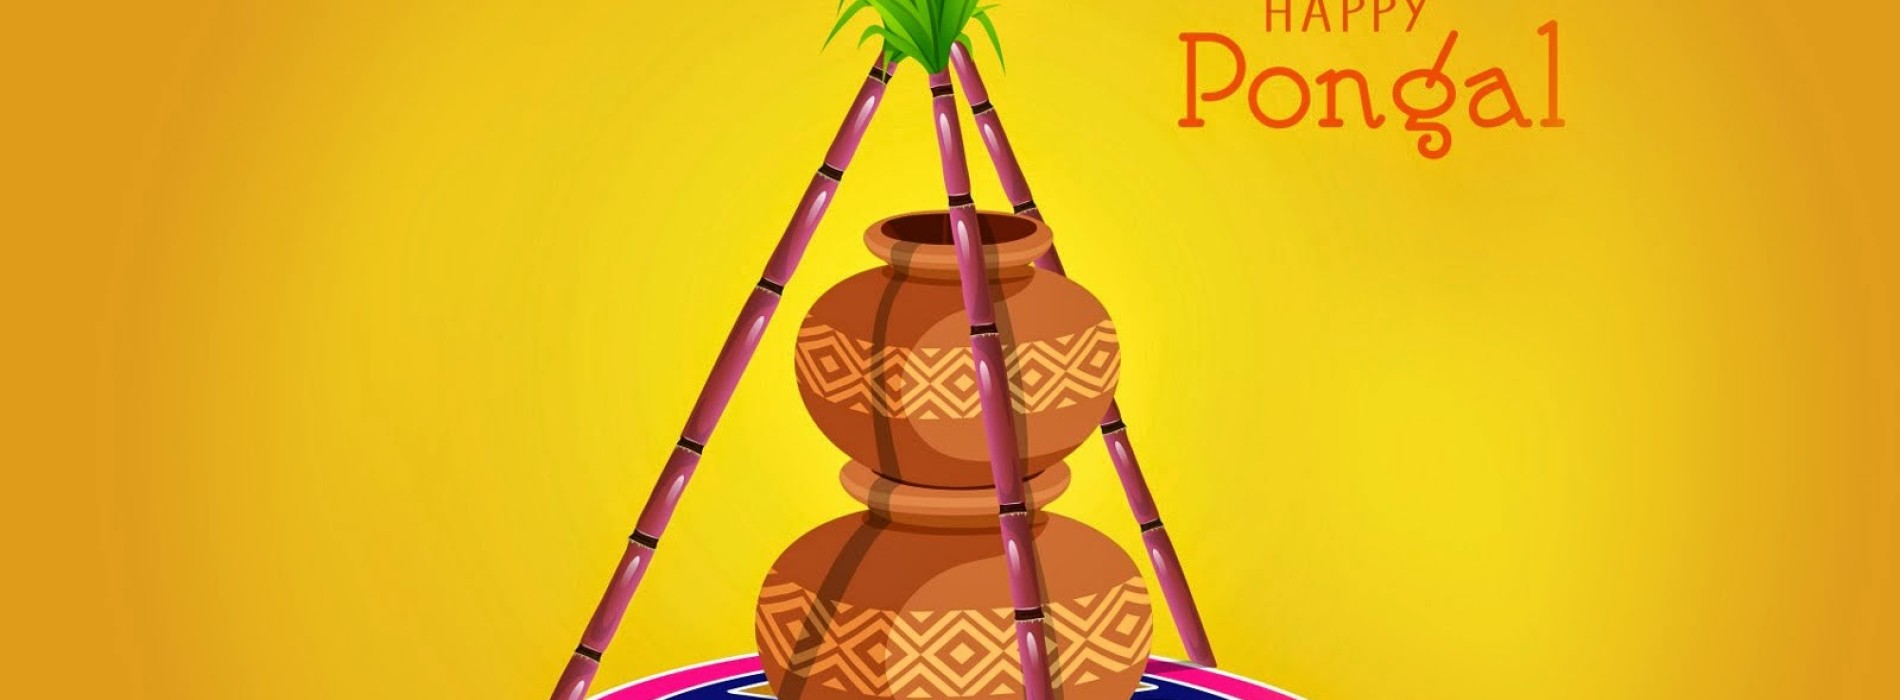 Happy Thai Pongal From Us To You!